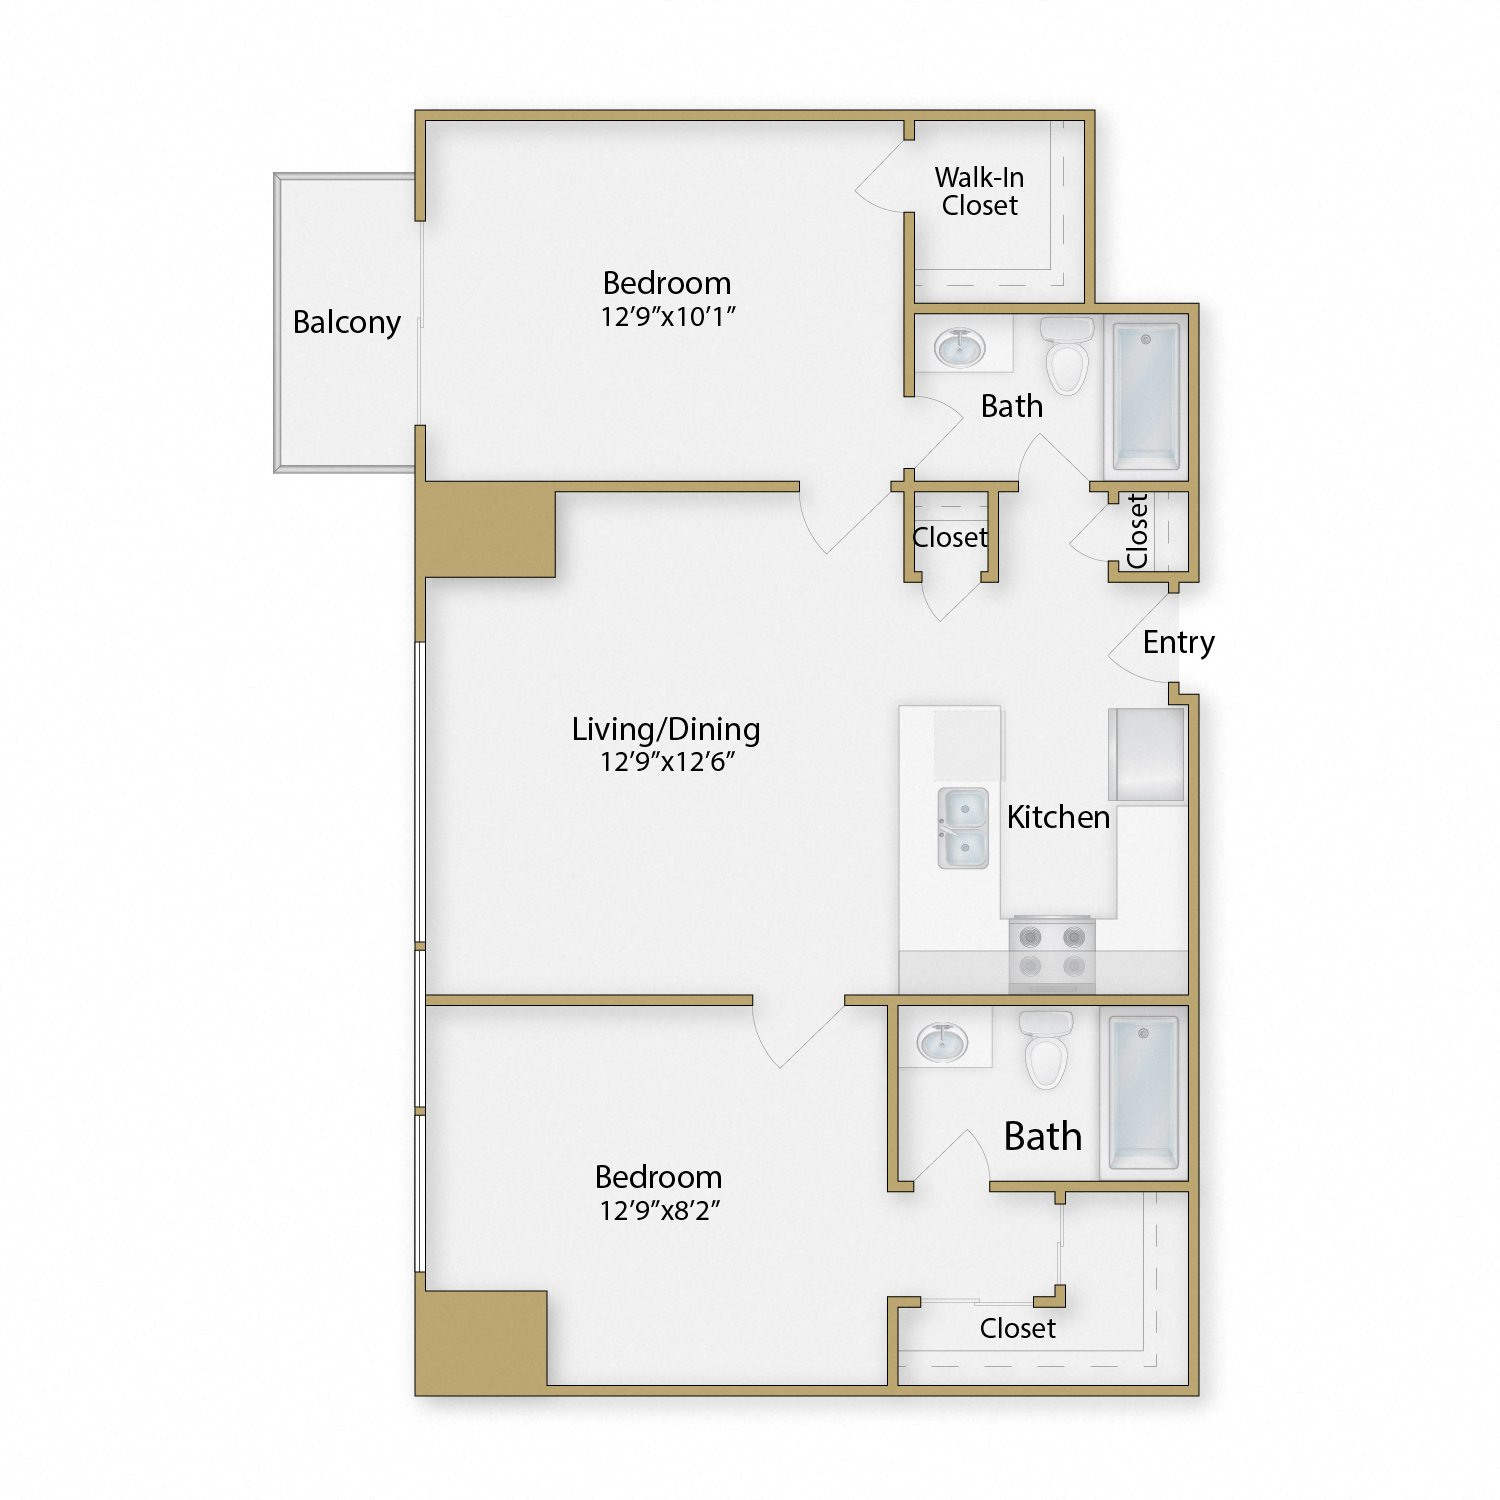 Treasure Island floor plan diagram. Two bedrooms, two bathrooms, an open kitchen dining and living area, and a balcony.